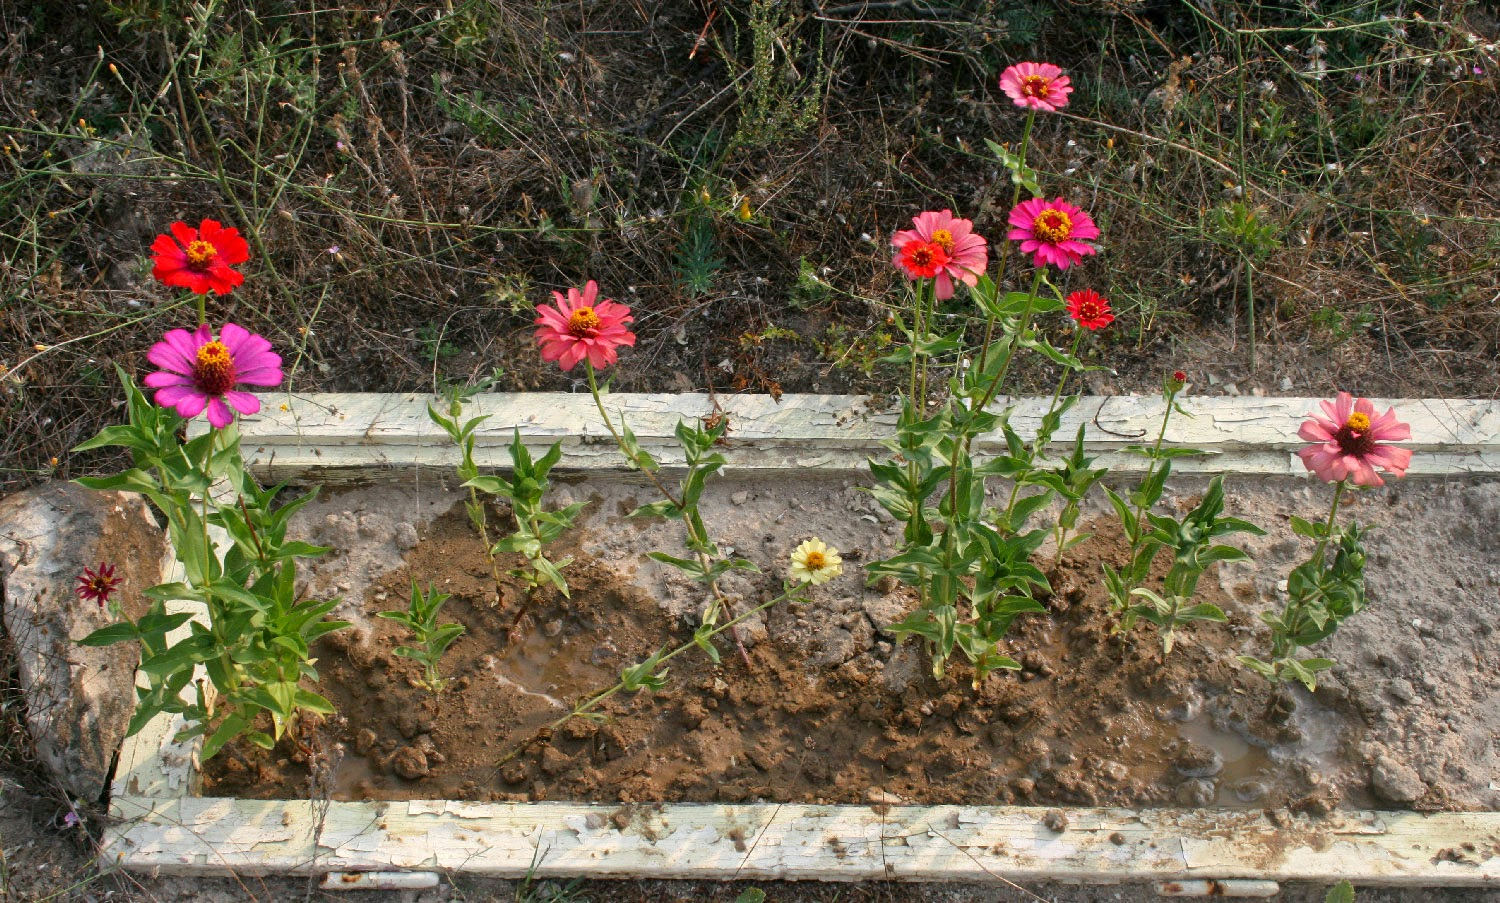 Most of the Zinnias now bloomed